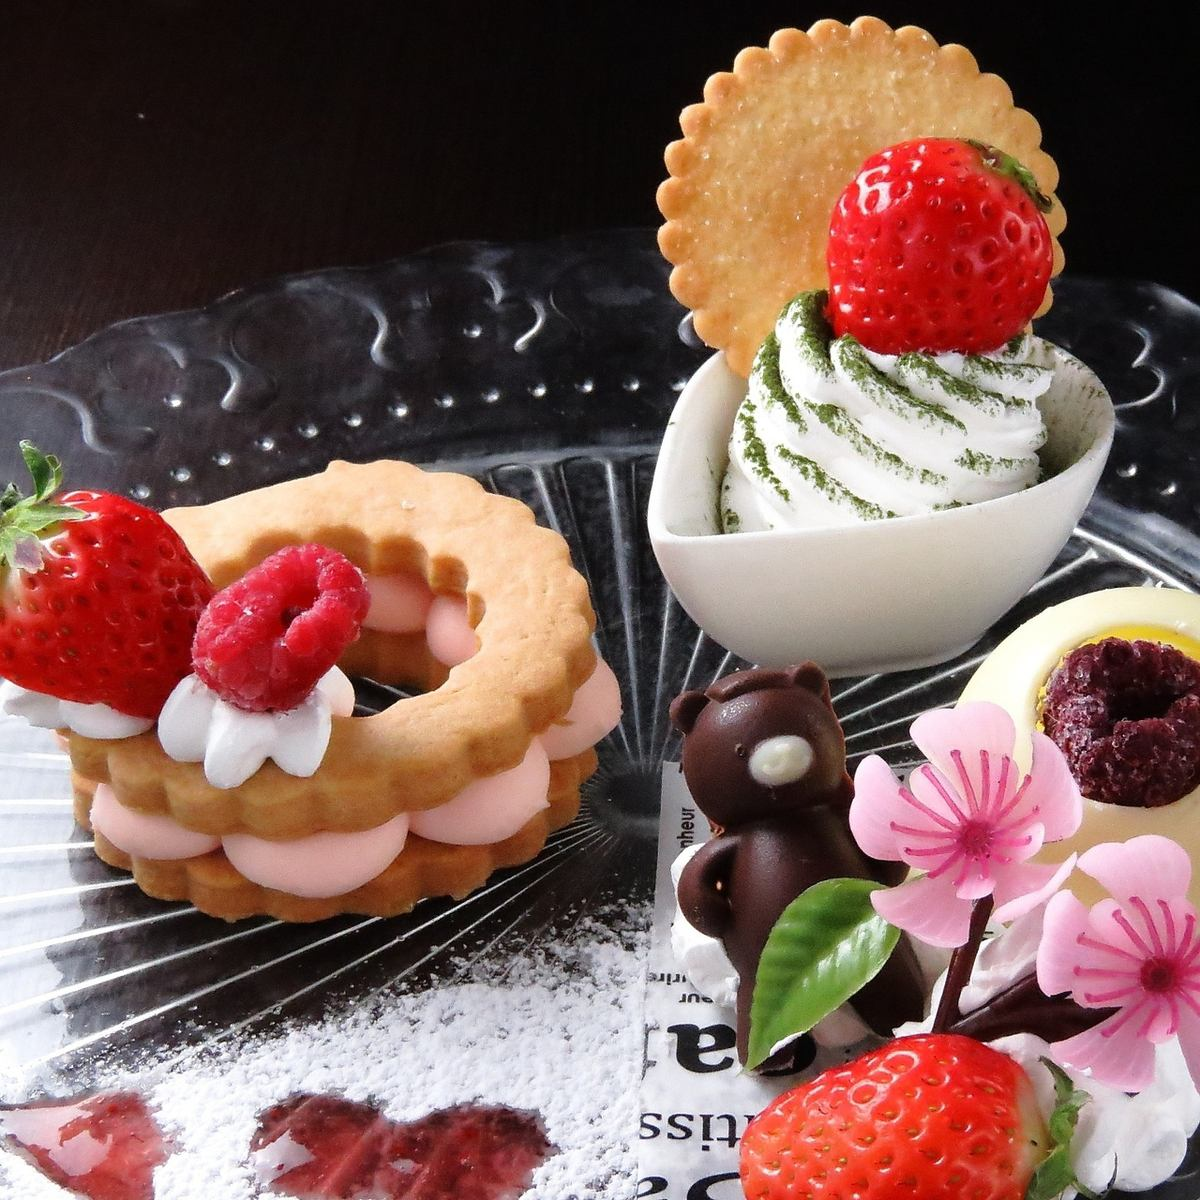 A seasonal dessert plate is newly introduced! Lunch is advantageous with coupons!